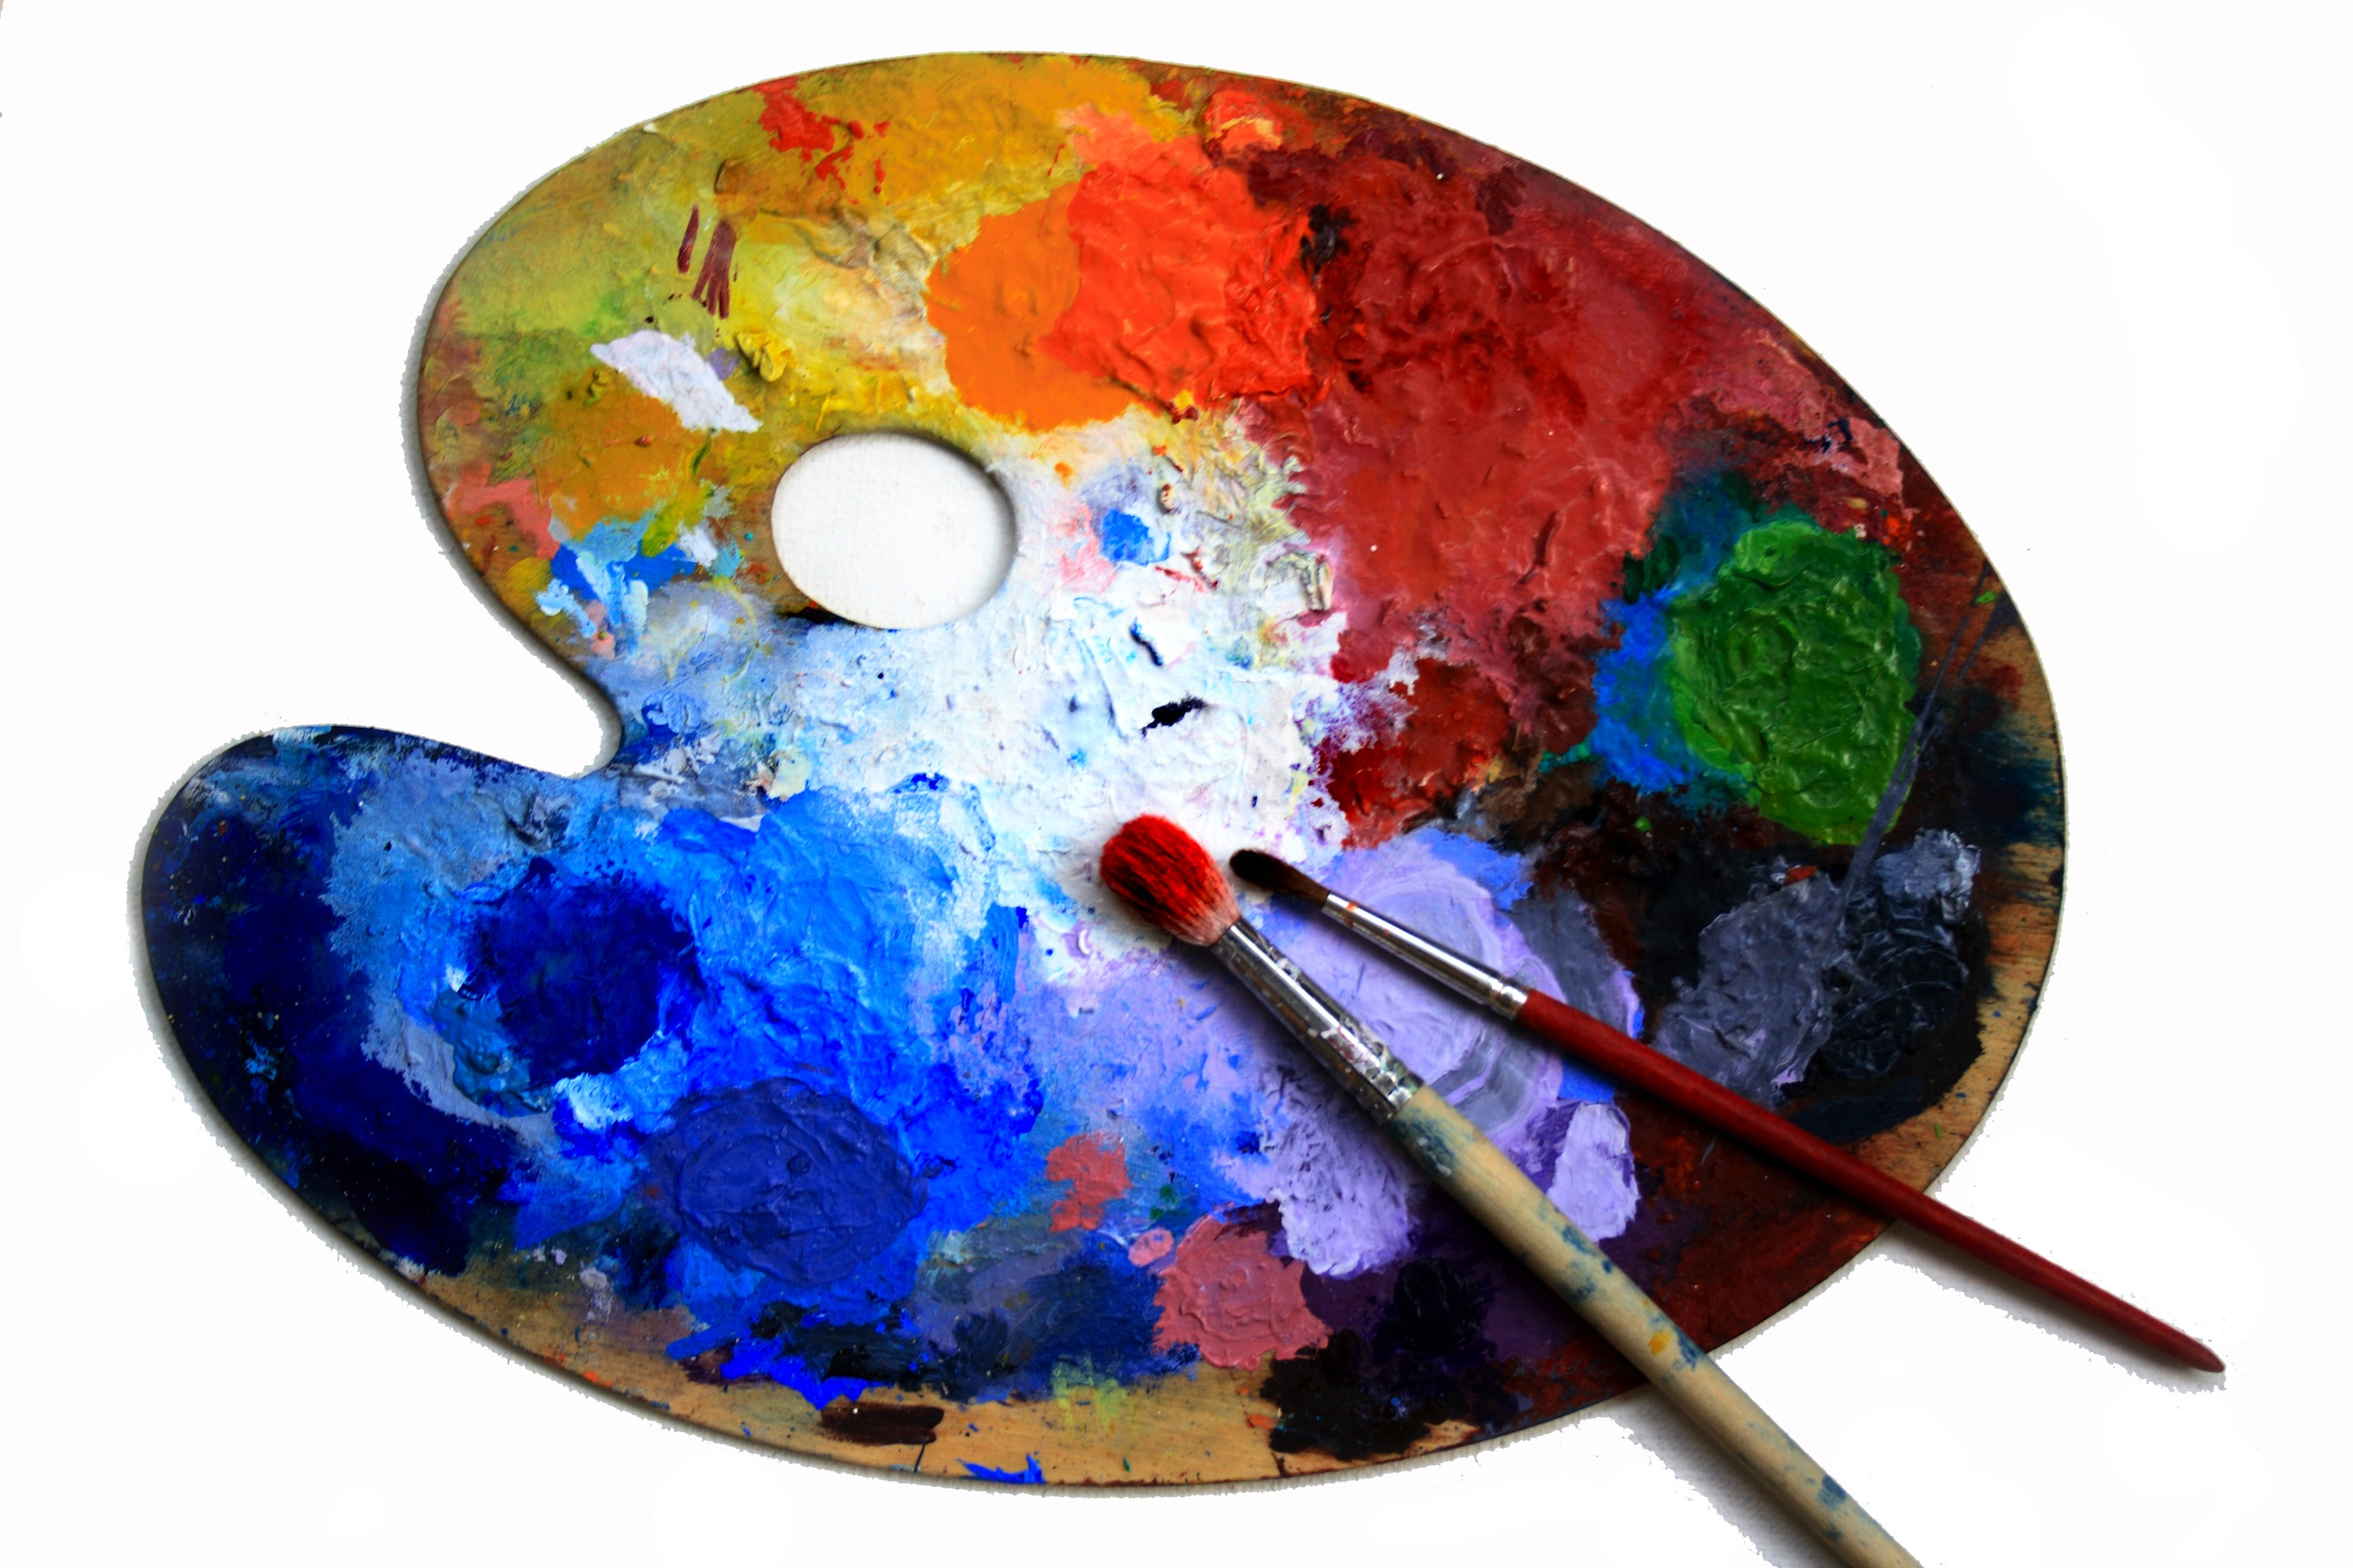 Artist's paint pallet and brushes.